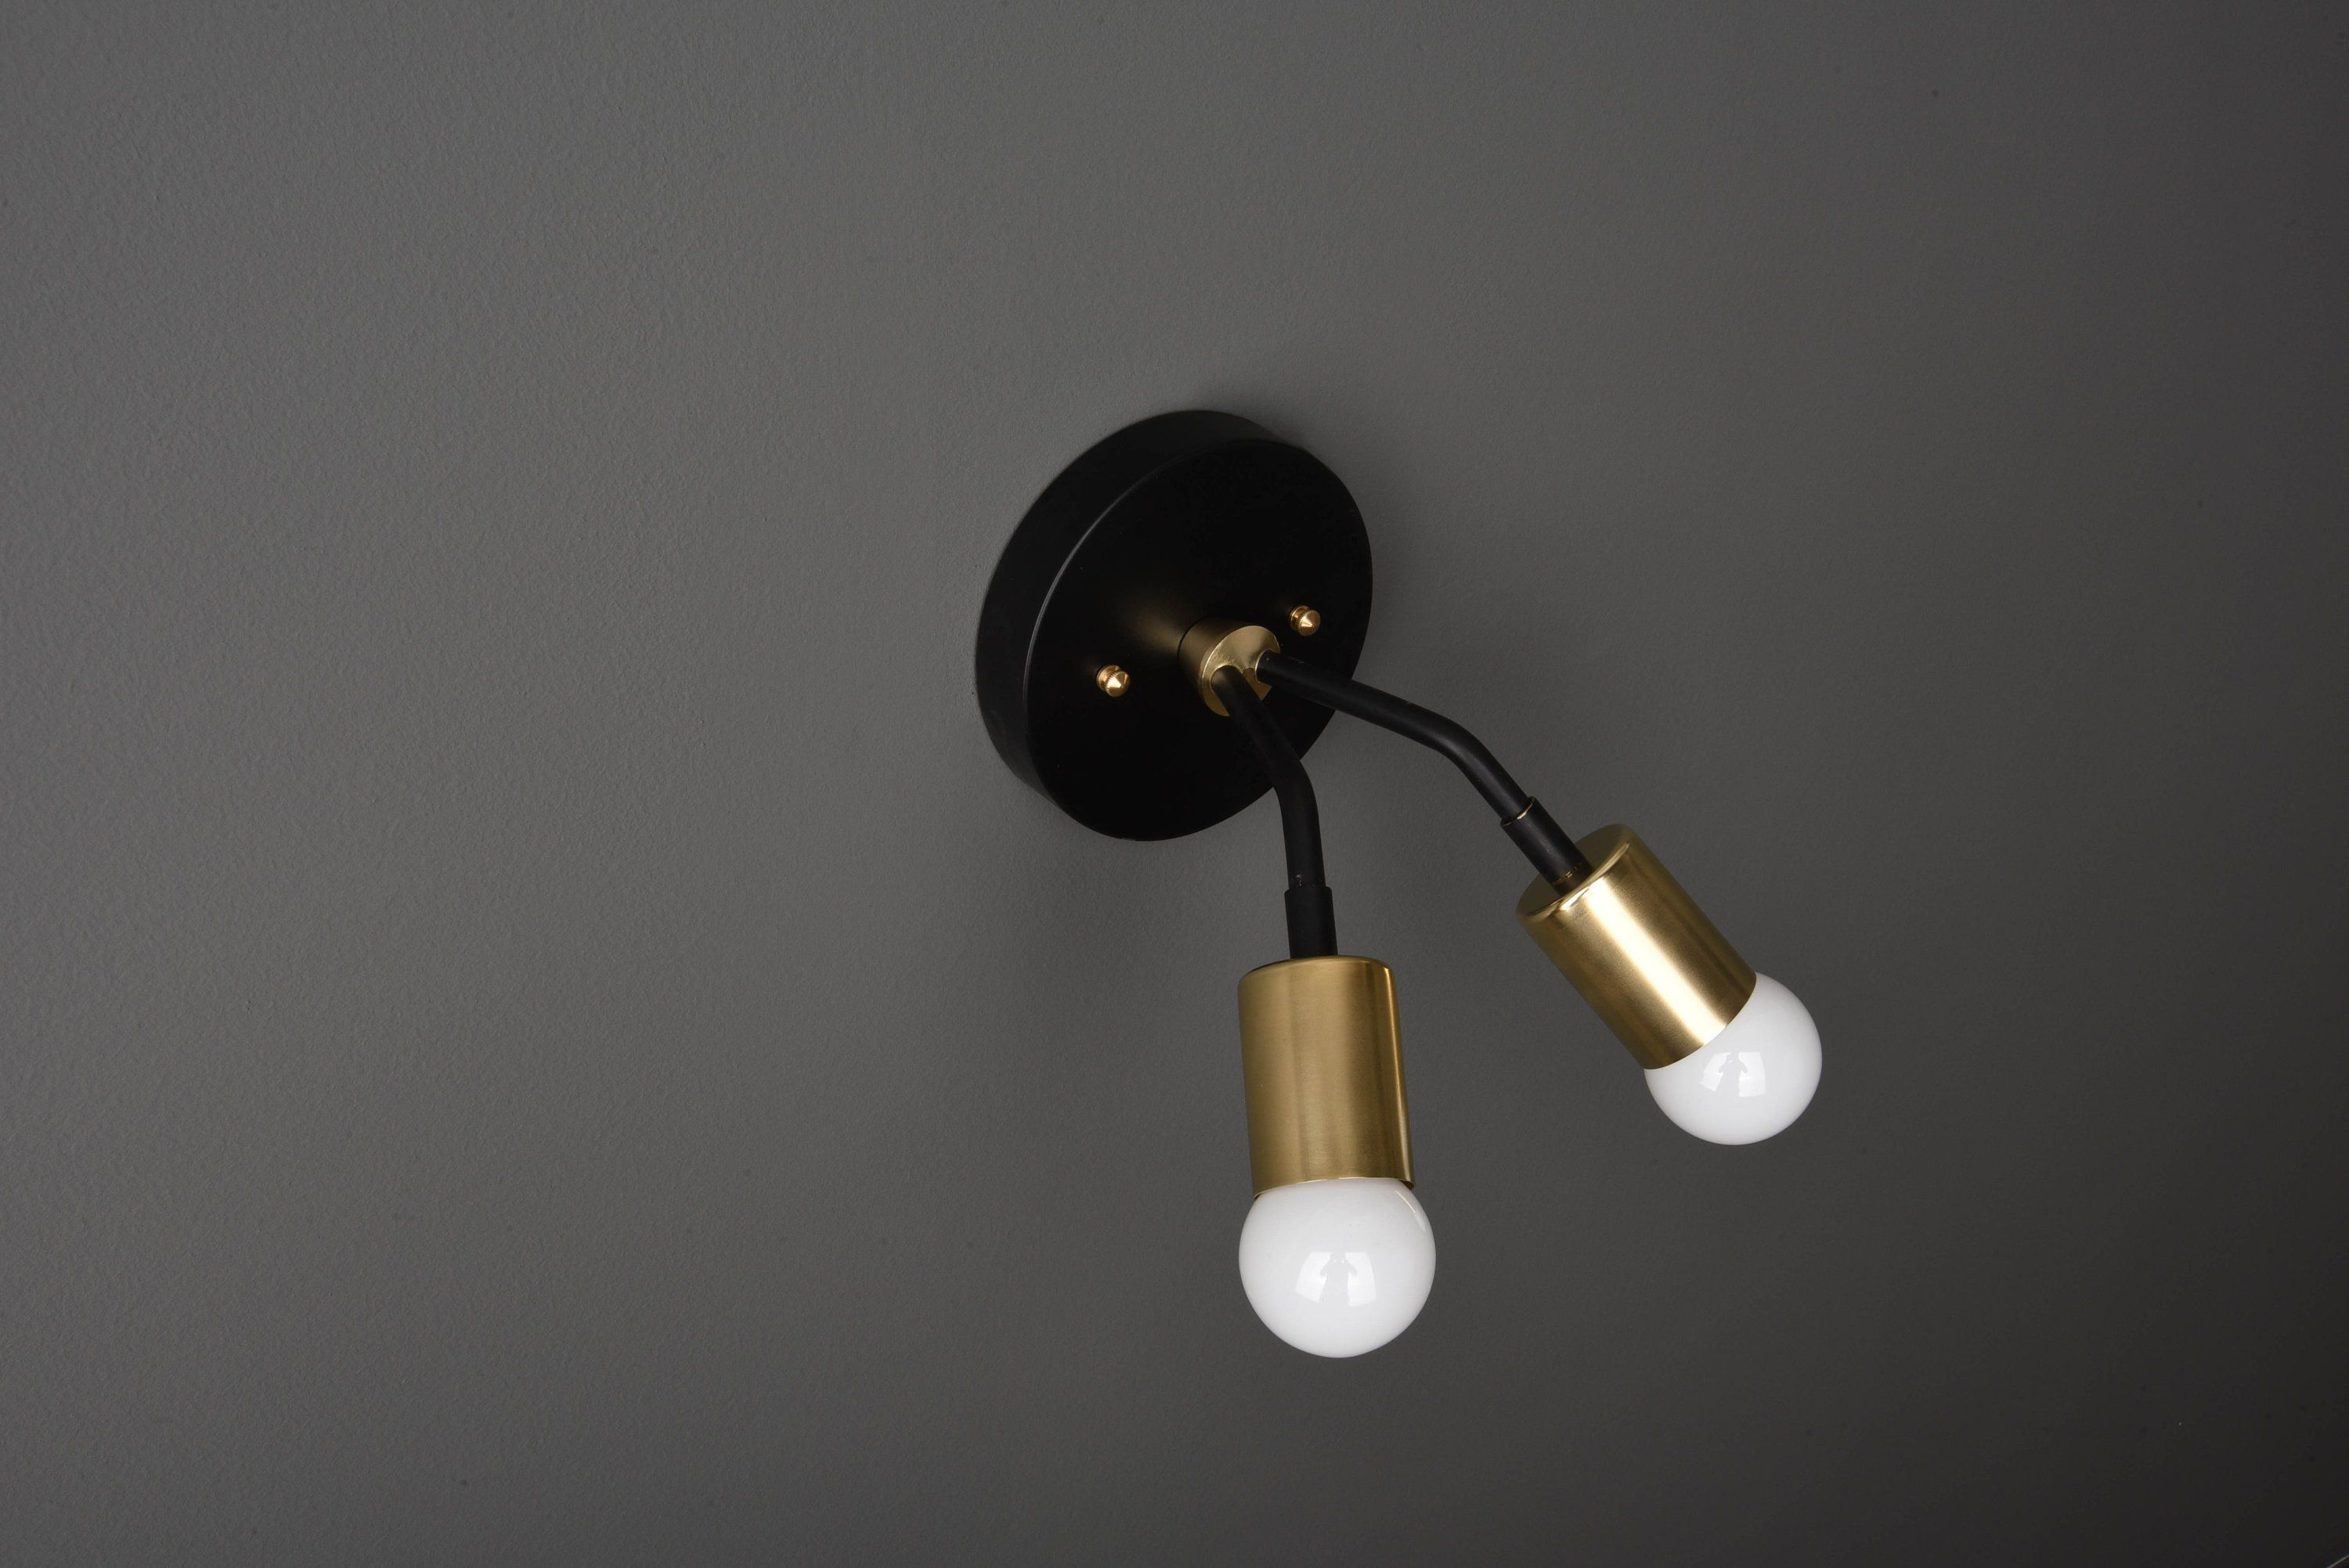 Stunning 2 Bulb Wall Sconce With Angled Arms Can Be Installed With The Bulbs Pointing Up Or Down Finishes Avail Modern Wall Lights Wall Lights Black And Brass